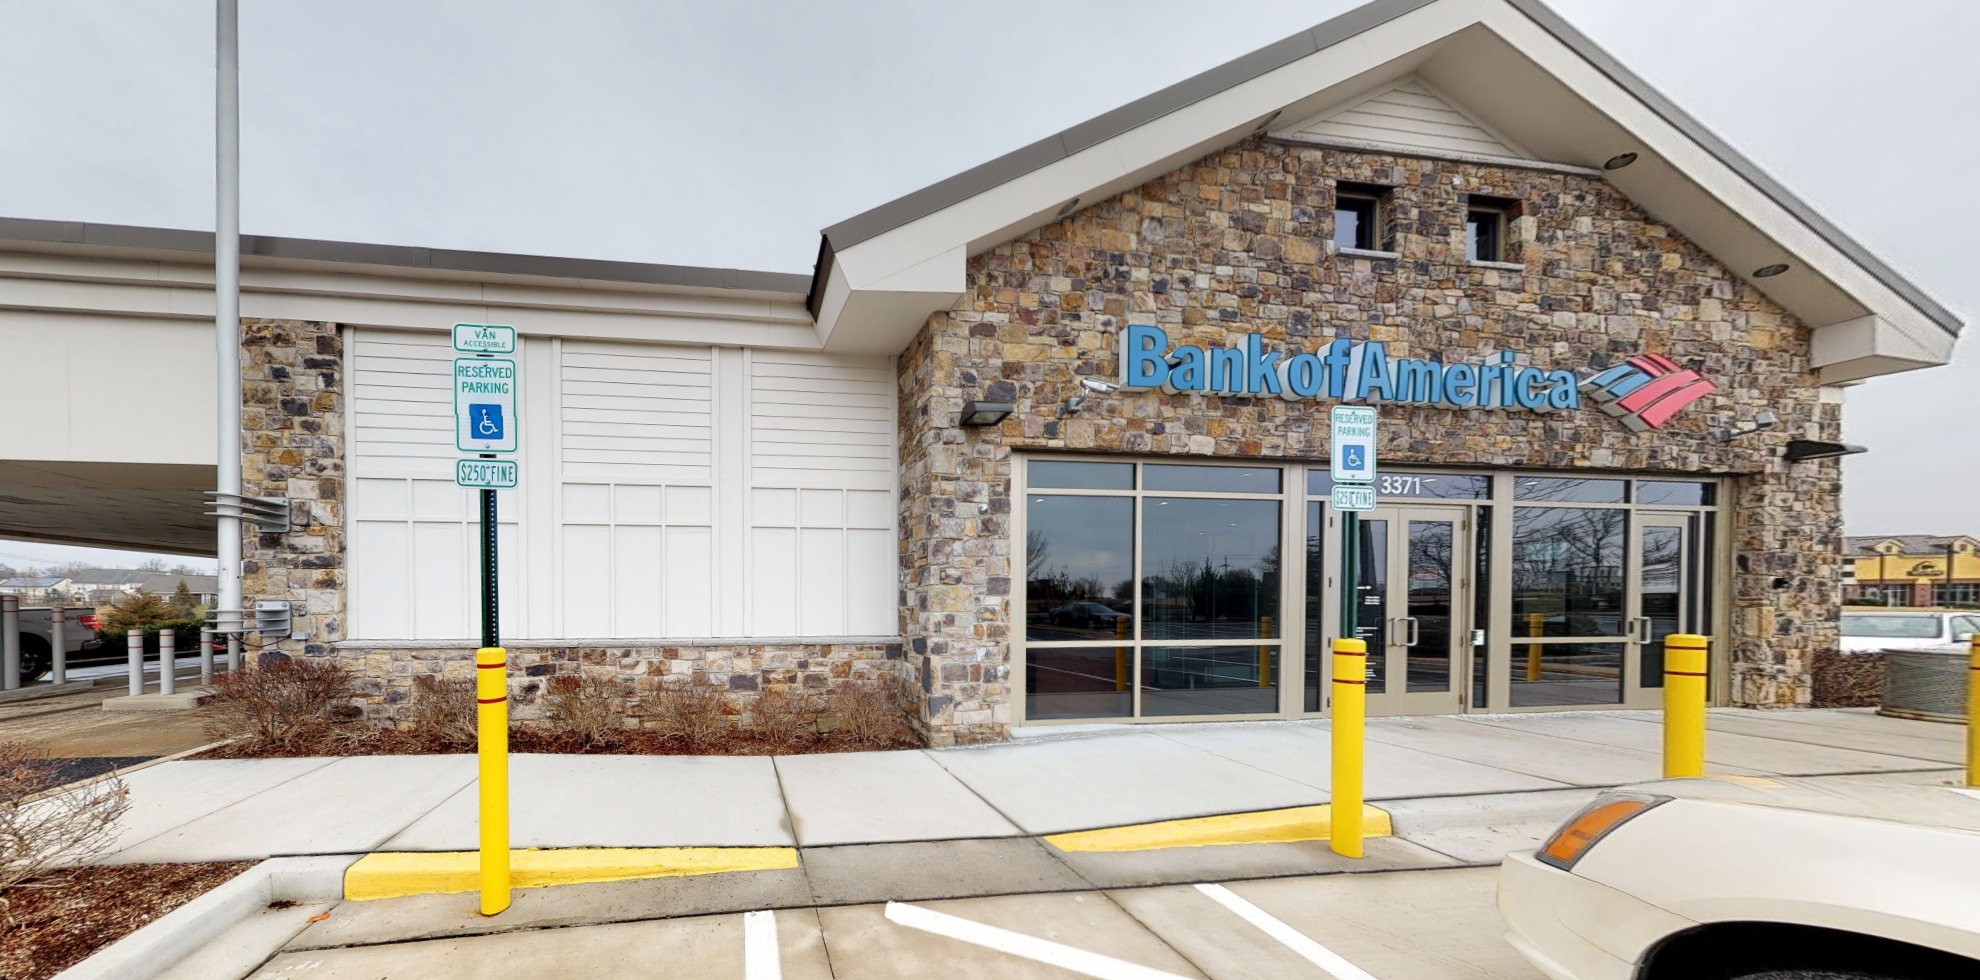 Bank of America financial center with drive-thru ATM and teller   3371 Worthington Blvd, Ijamsville, MD 21754